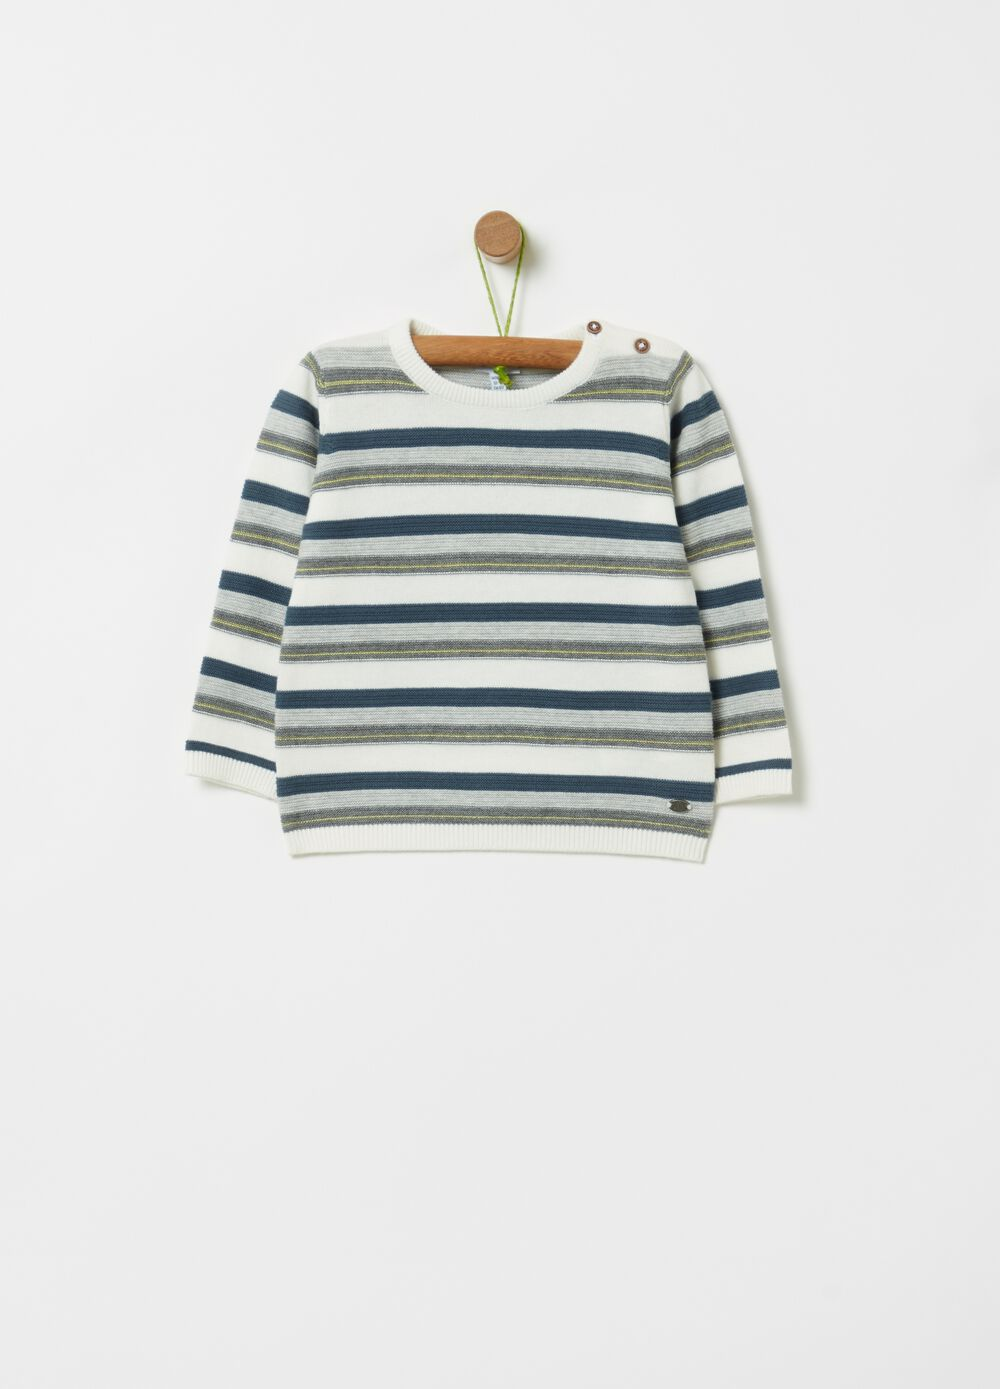 100% organic cotton knitted pullover